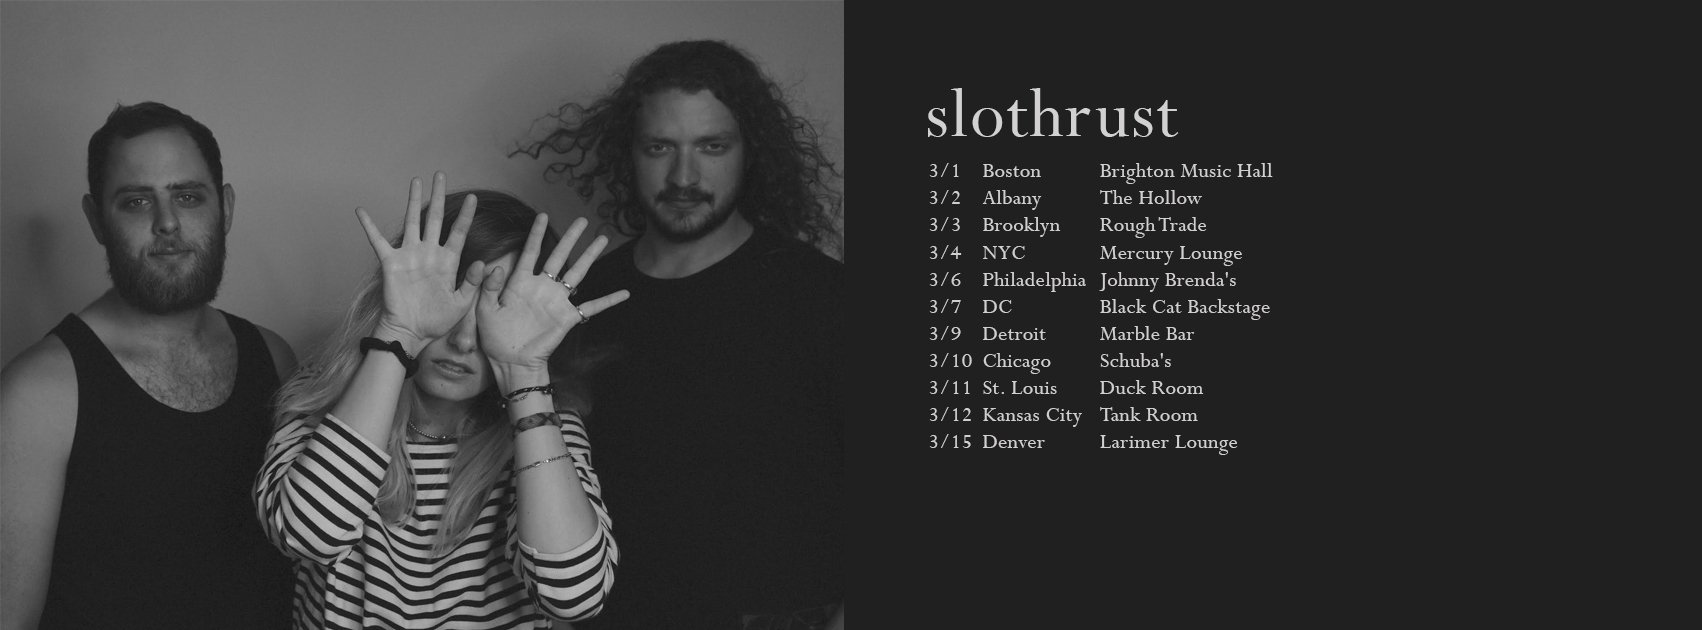 Slothrust 2017 tour dates